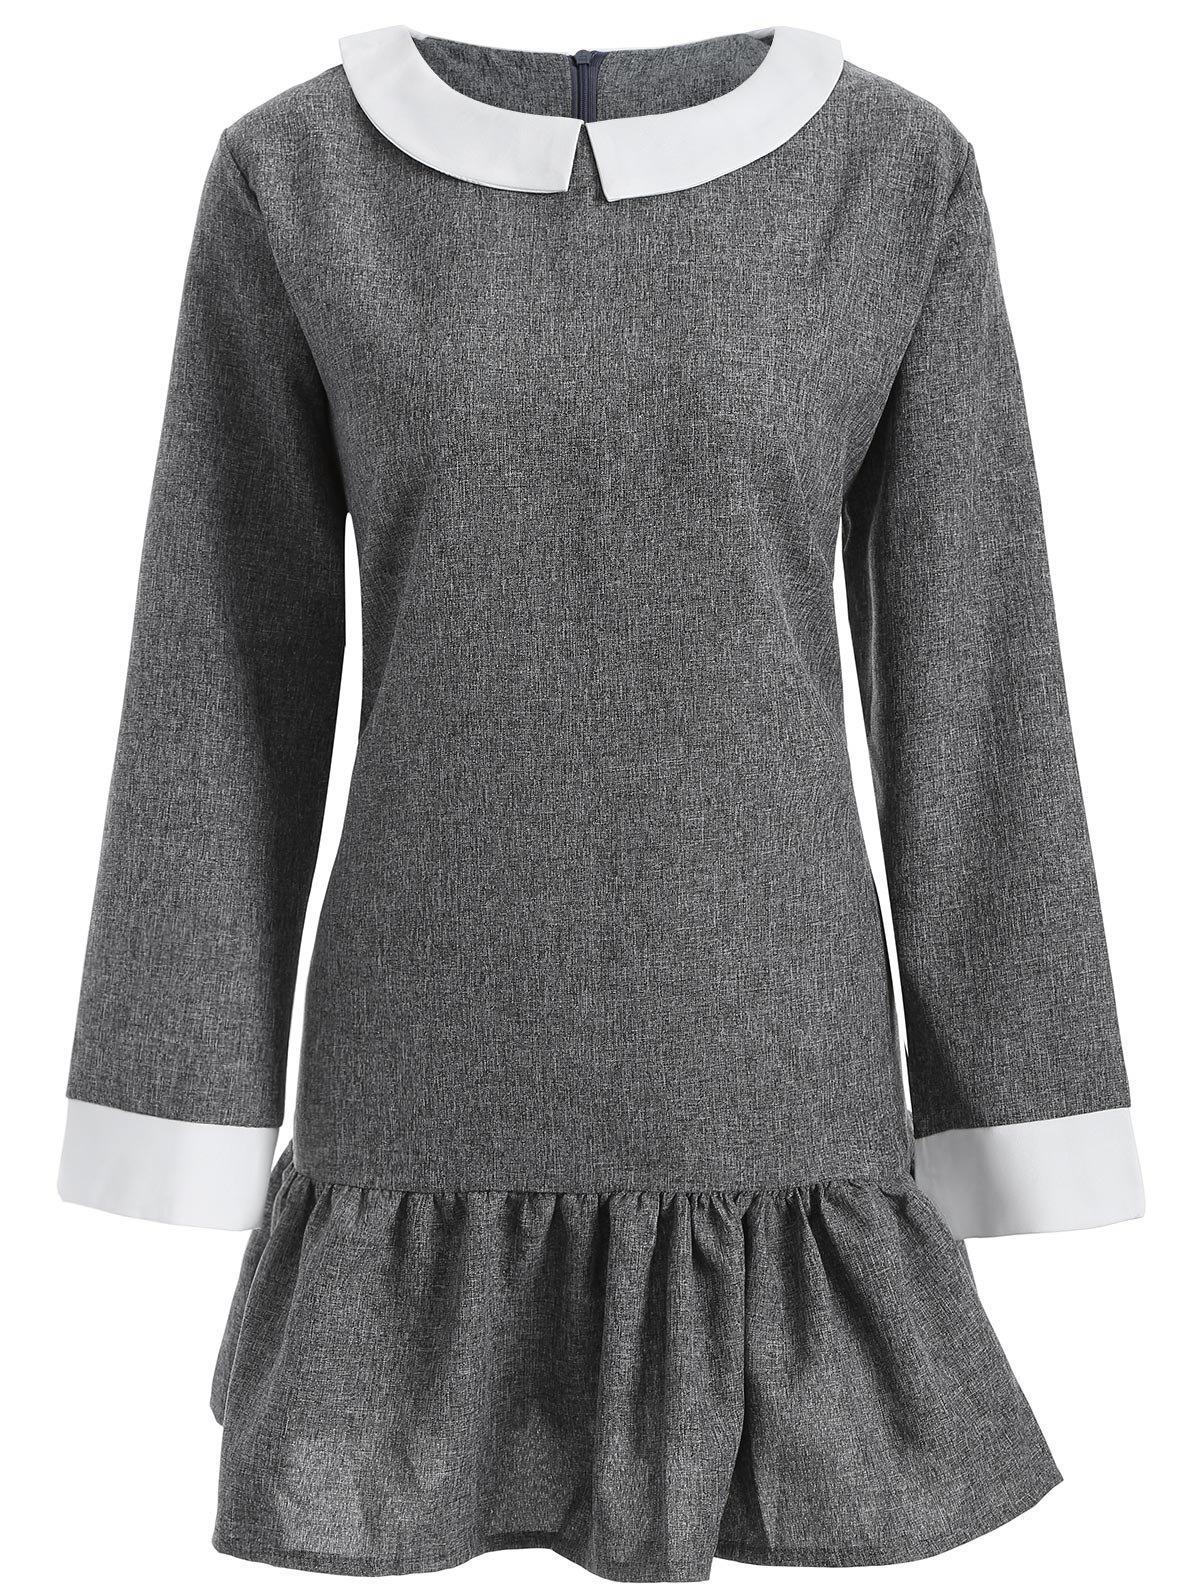 30% OFF] Plus Size Peter Pan Collar Dress | Rosegal